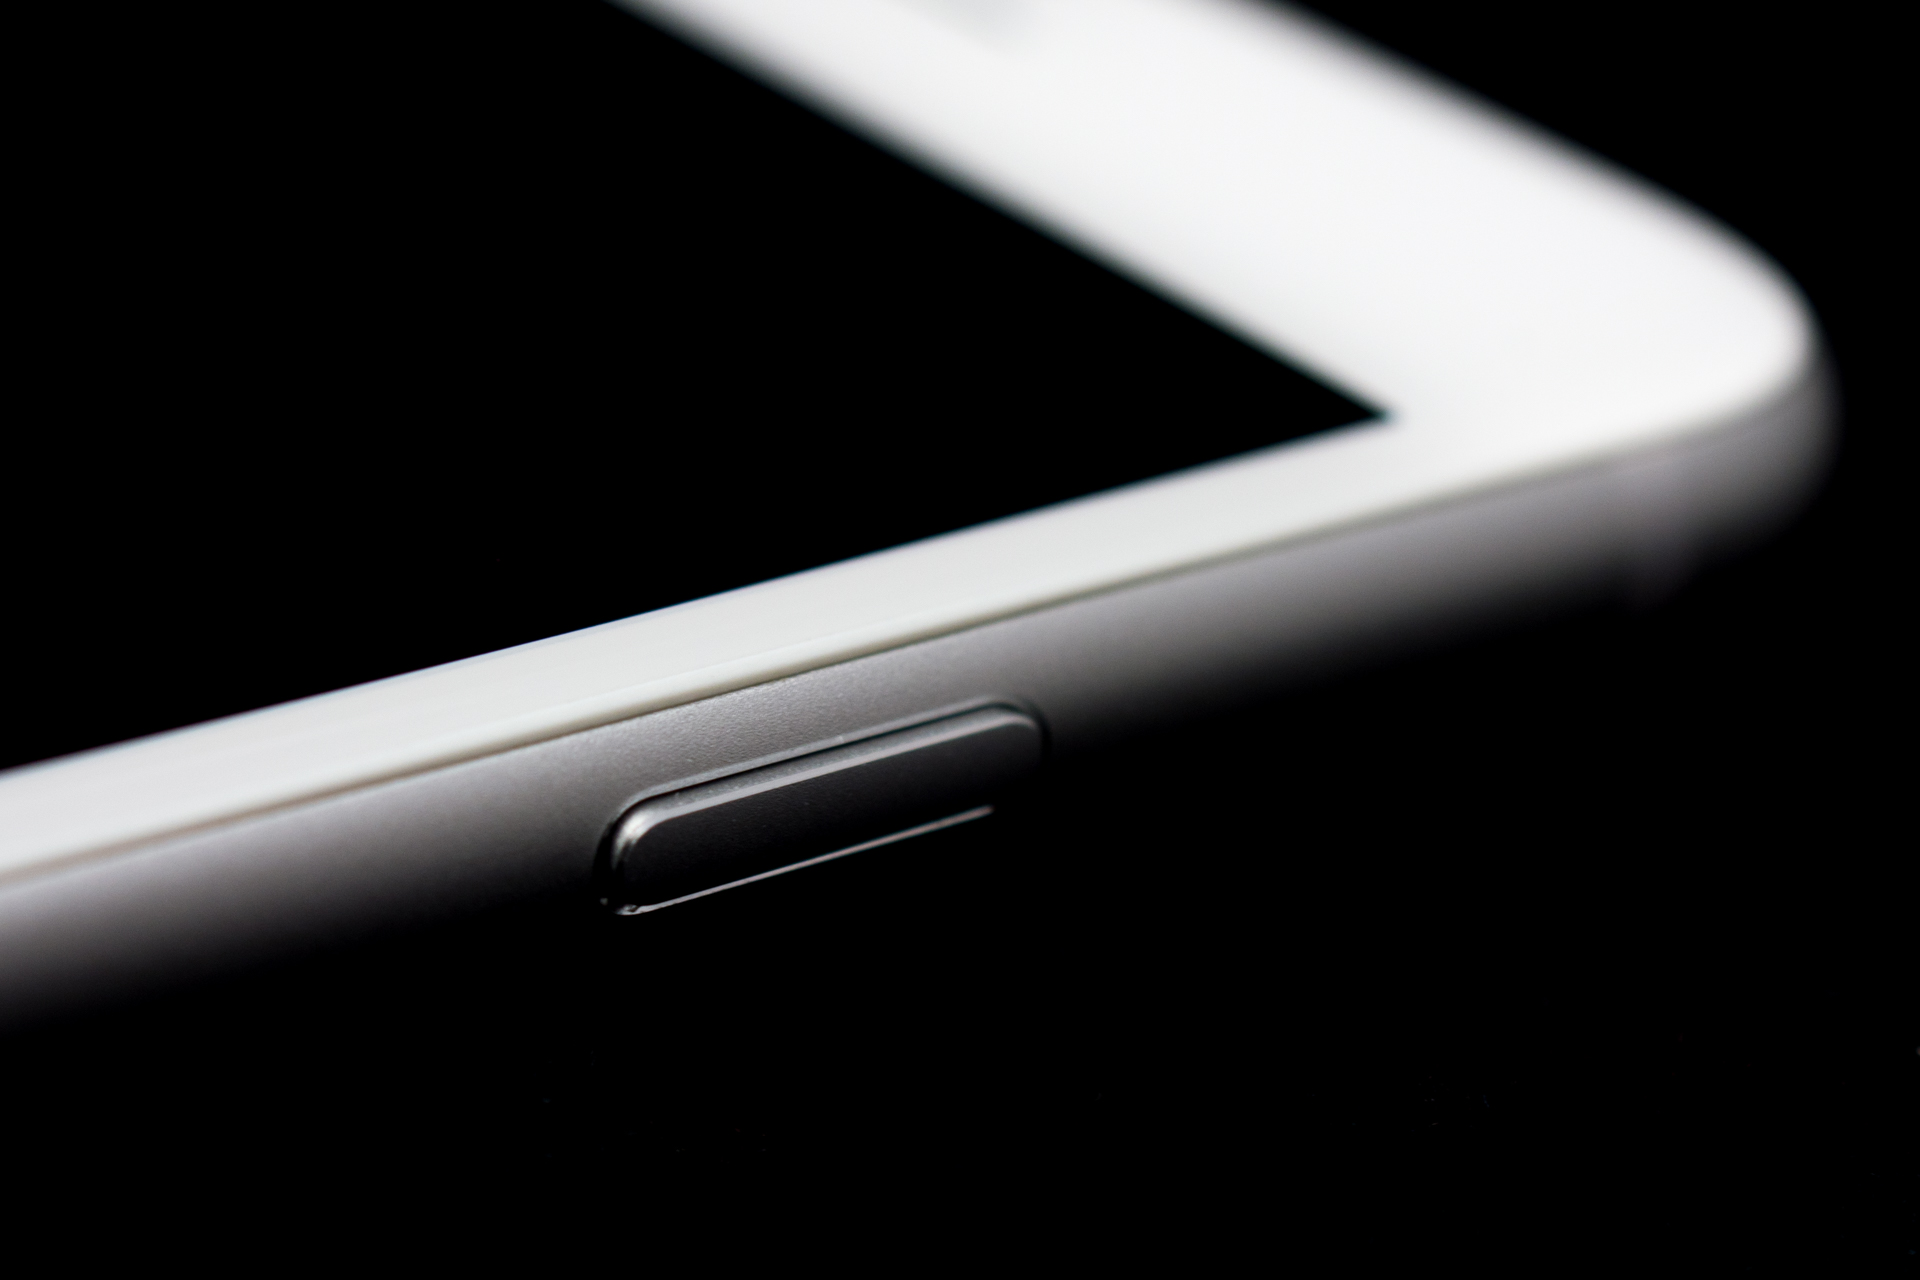 Cellebrite can now unlock iPhone 6 and 6+ and extract data from